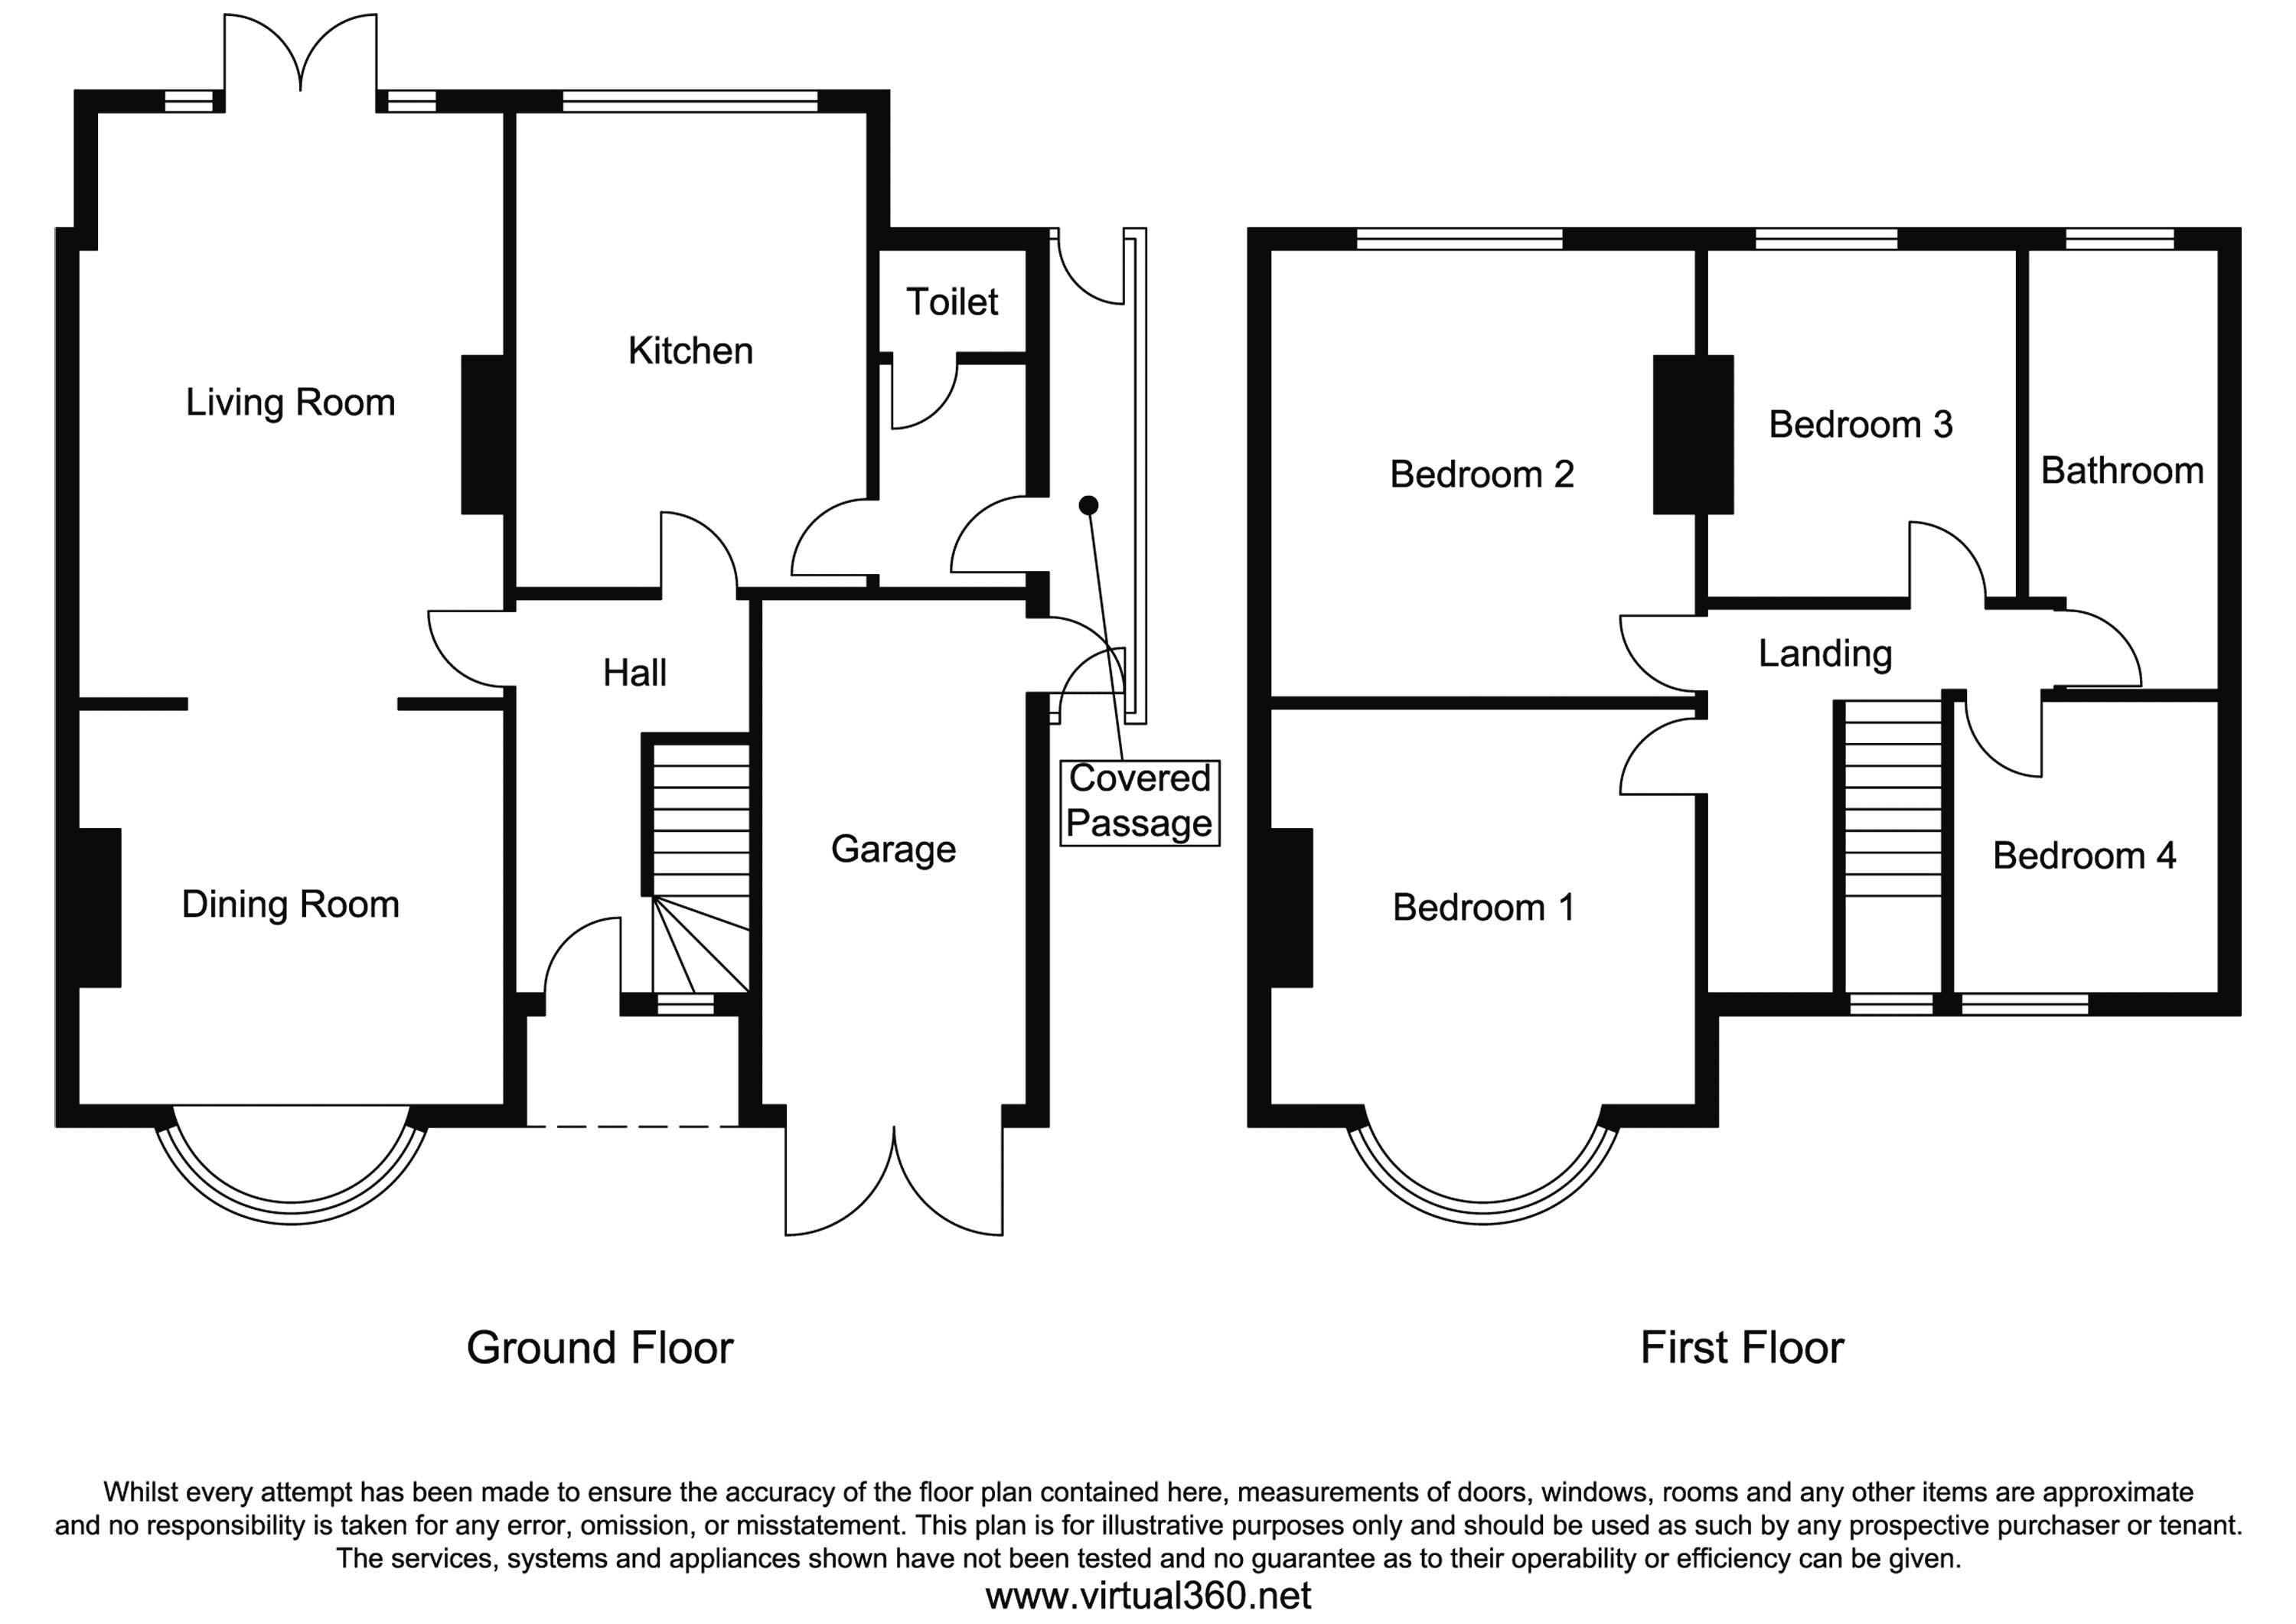 Goldieslie Road, Sutton Coldfield floor plan